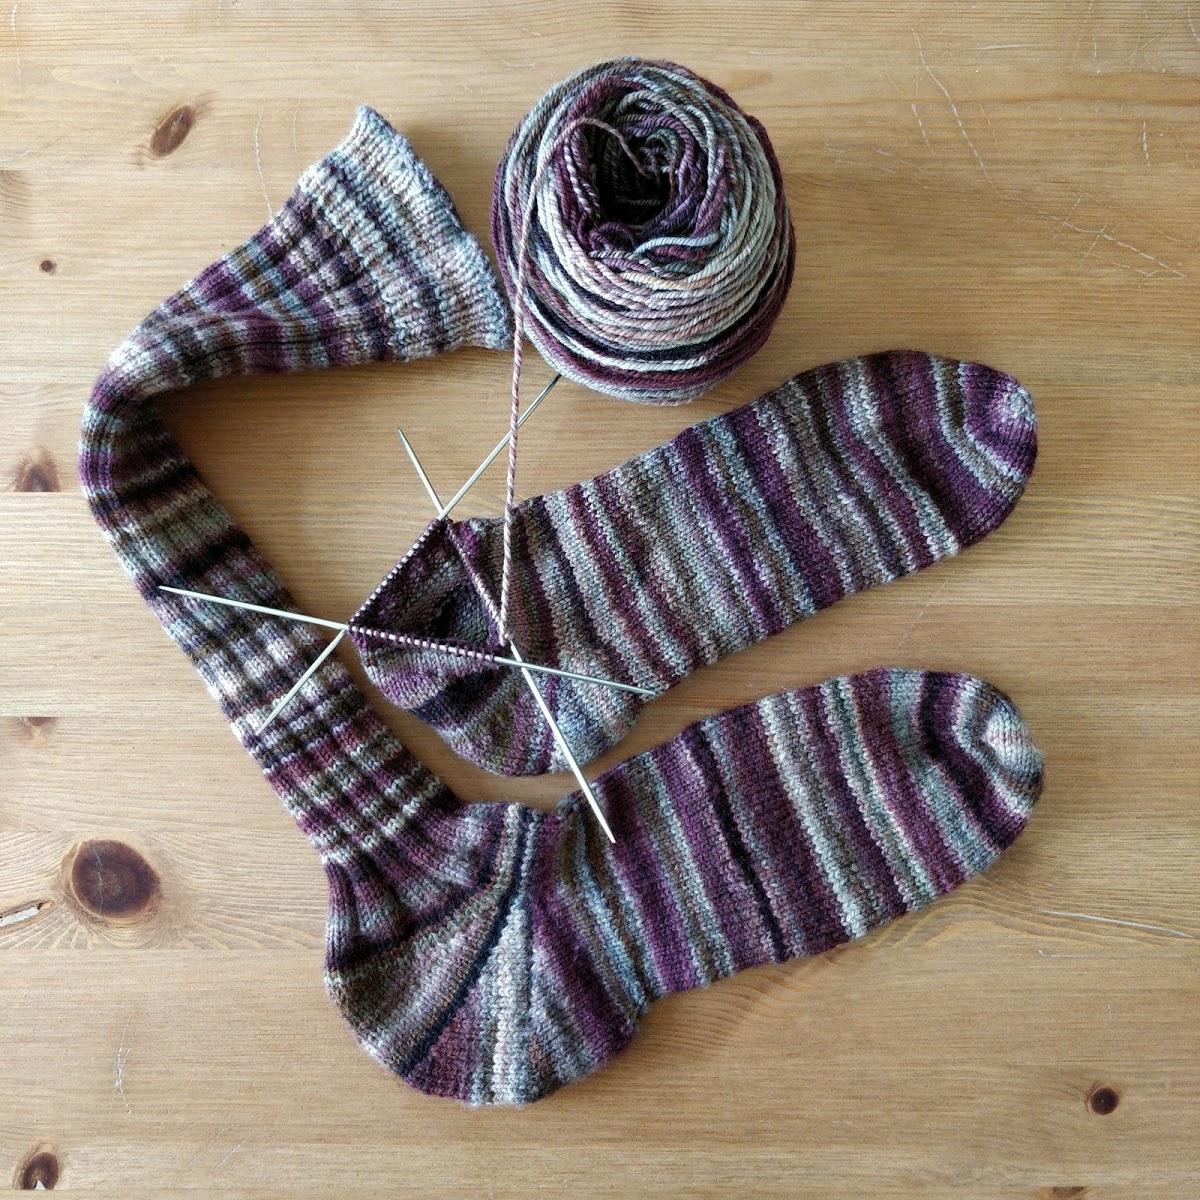 One and a half knee socks in burgundy stripes, and half a ball of yarn.